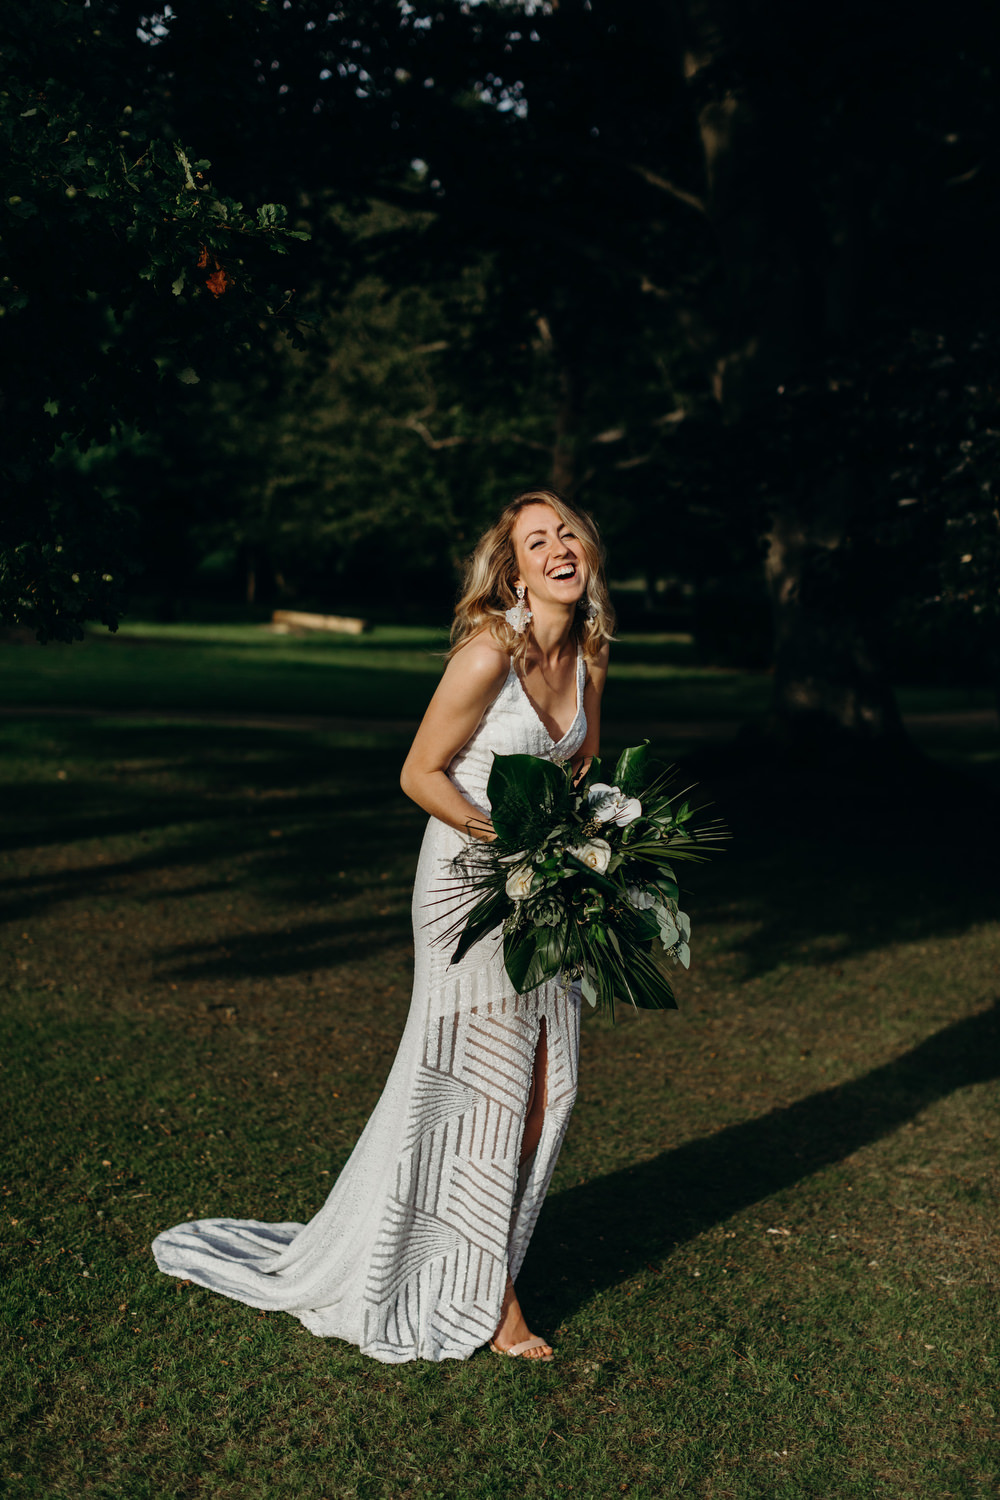 Sequin Dress Bride Bridal Gown Spaghetti Straps Spilt Skirt Tropical Bouquet Flowers Palm Leaves Deer Park Country House Hotel Wedding Richard Skins Photography